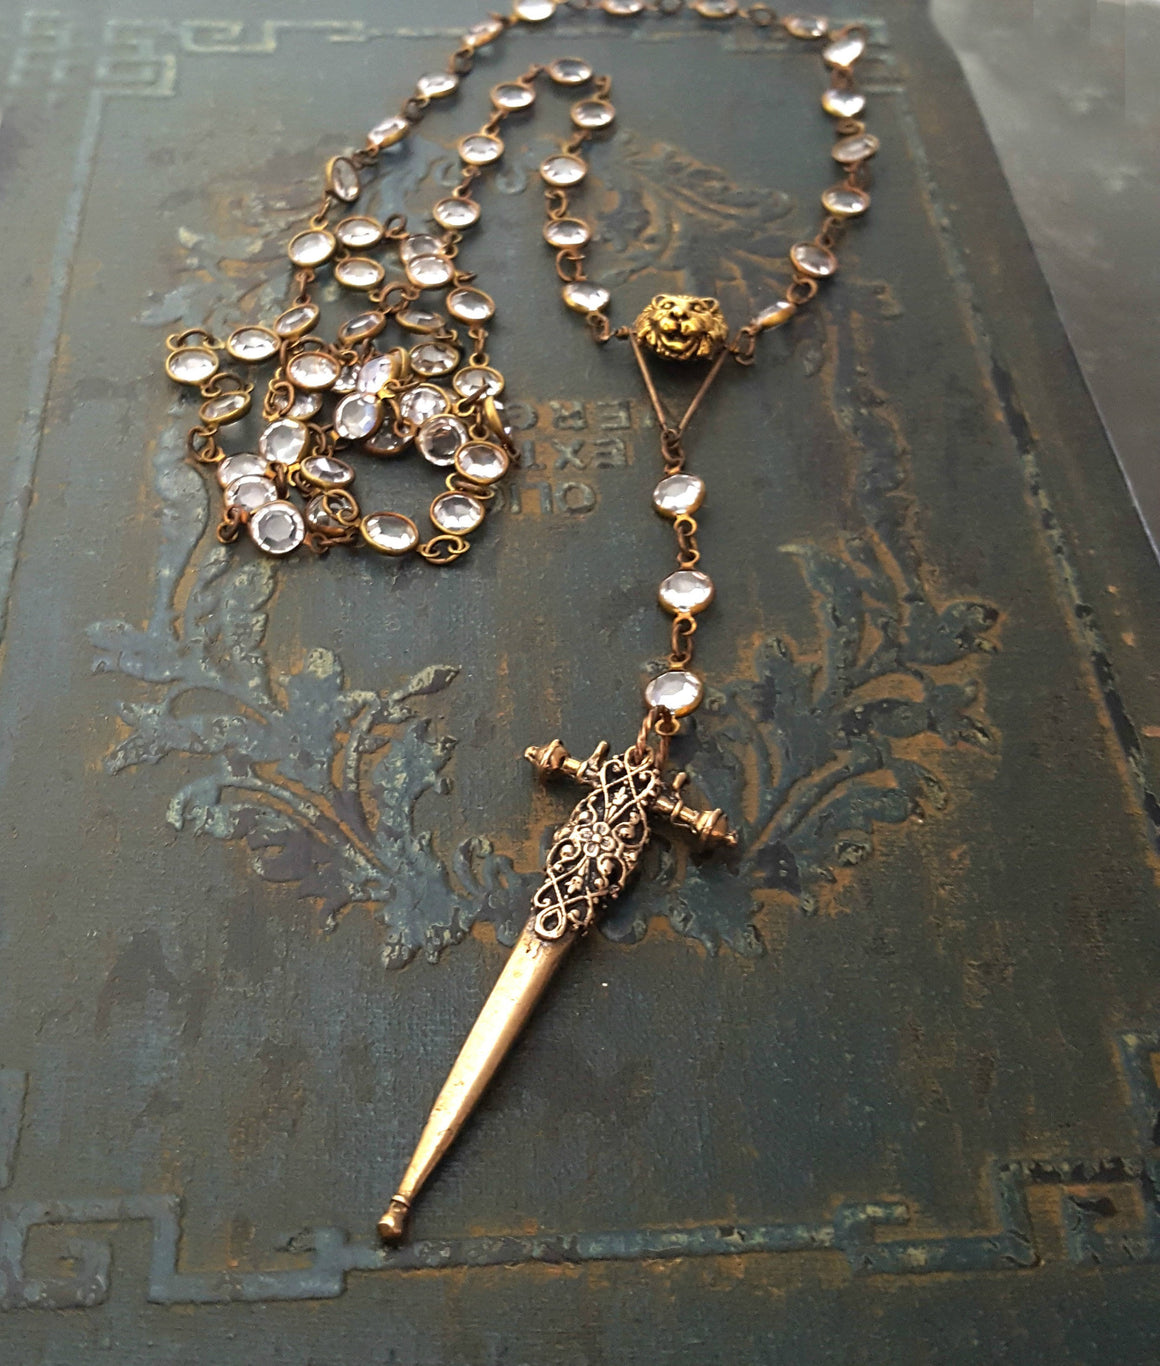 FEARLESS. Long Crystal Chain Lion Sword Cross BRONZE Rosary Necklace - ViaLove Designs